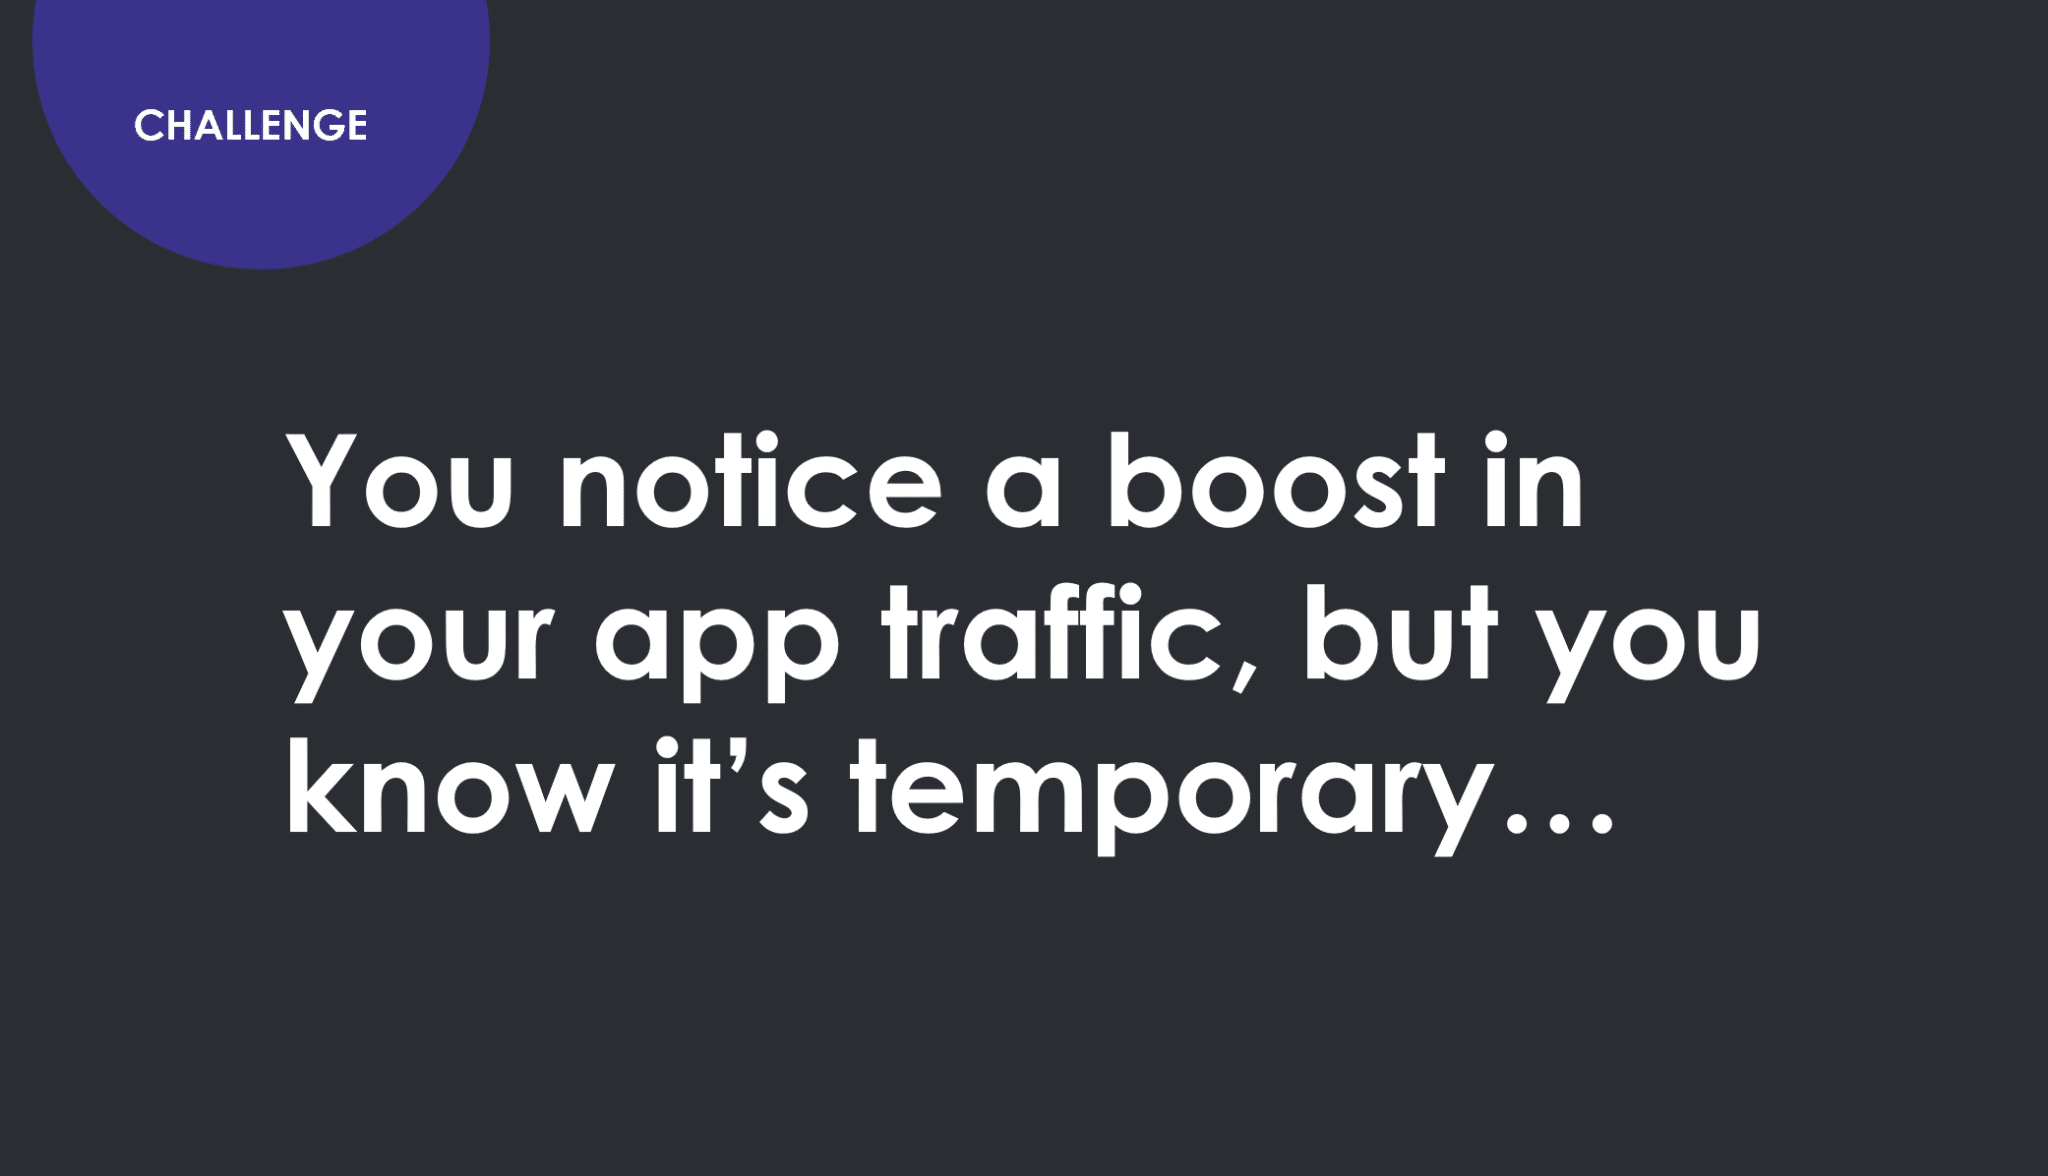 Challenge. You notice a boost in your app traffic but you know it's temporary.